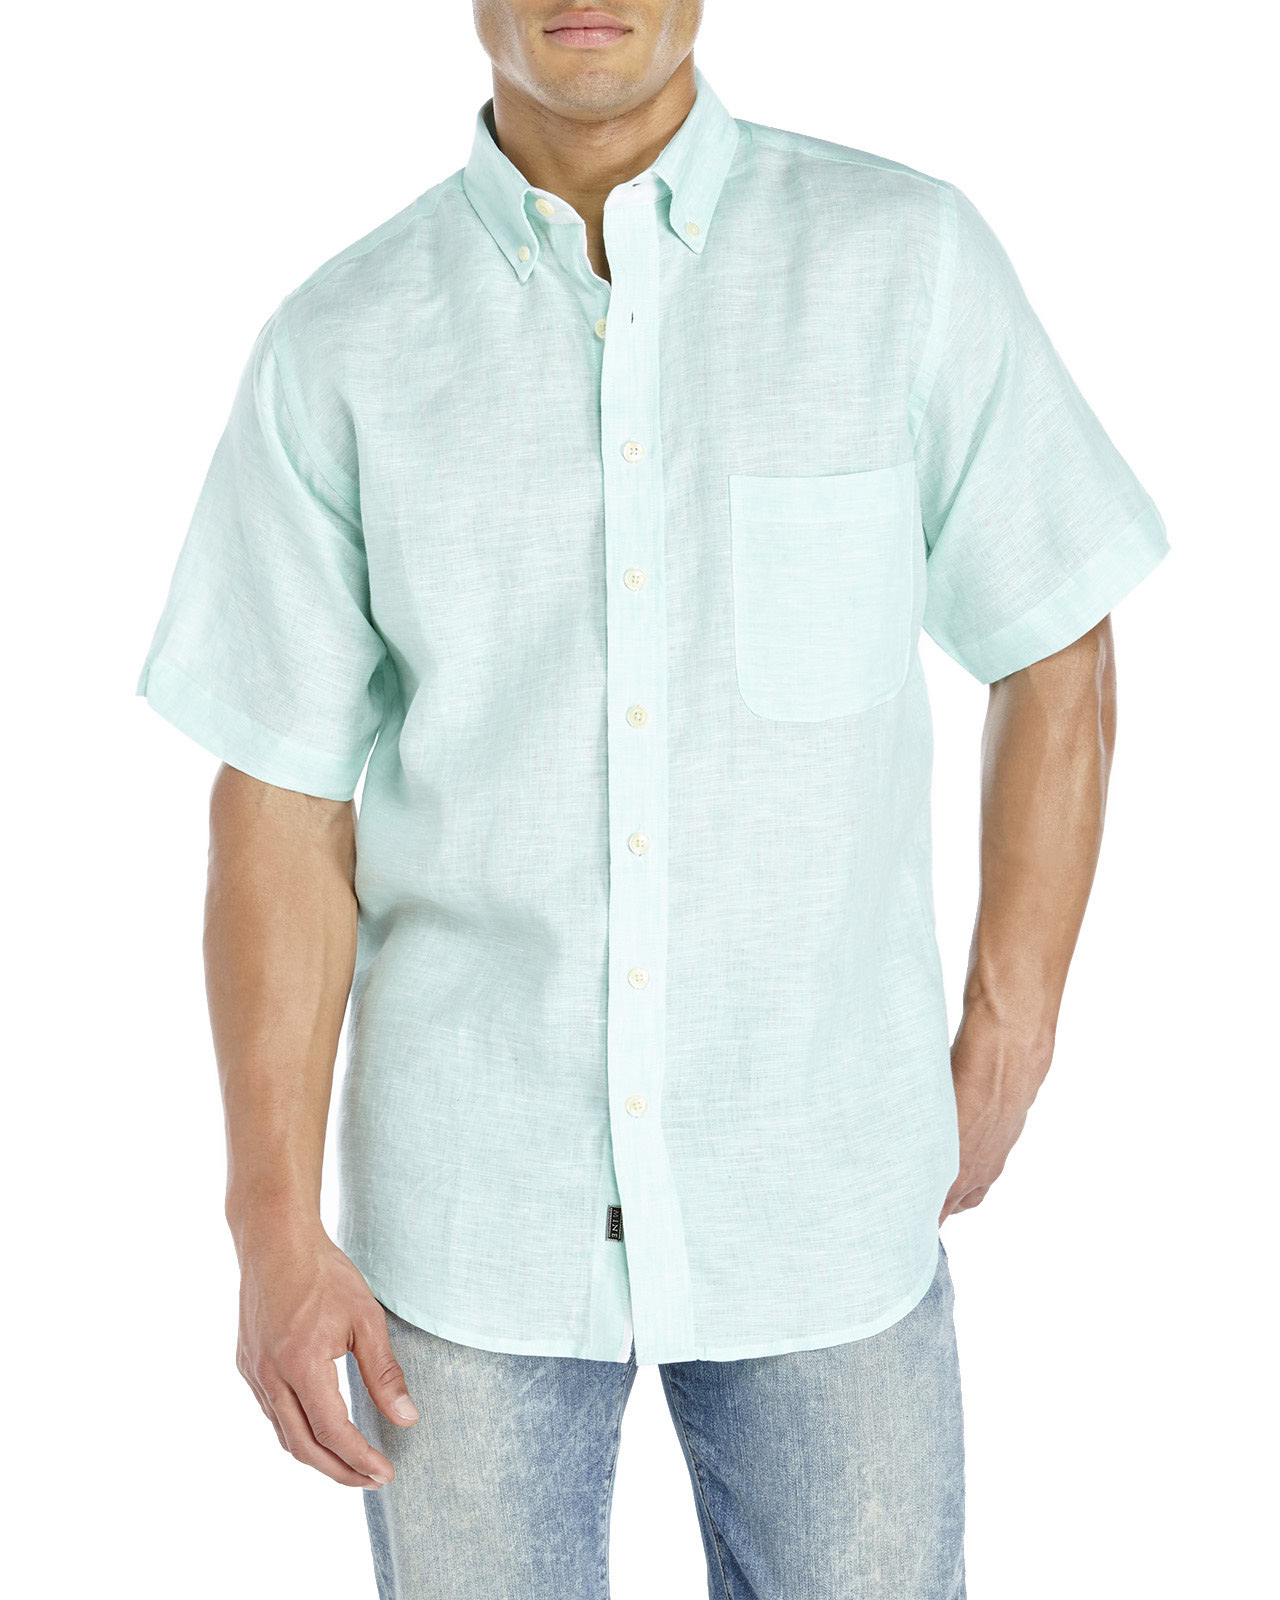 Mens Linen Shirts Stay cool and look sharp in our men's linen shirts designed specifically for beach weddings. Choose from long sleeve, short sleeve, or French cuff styles.